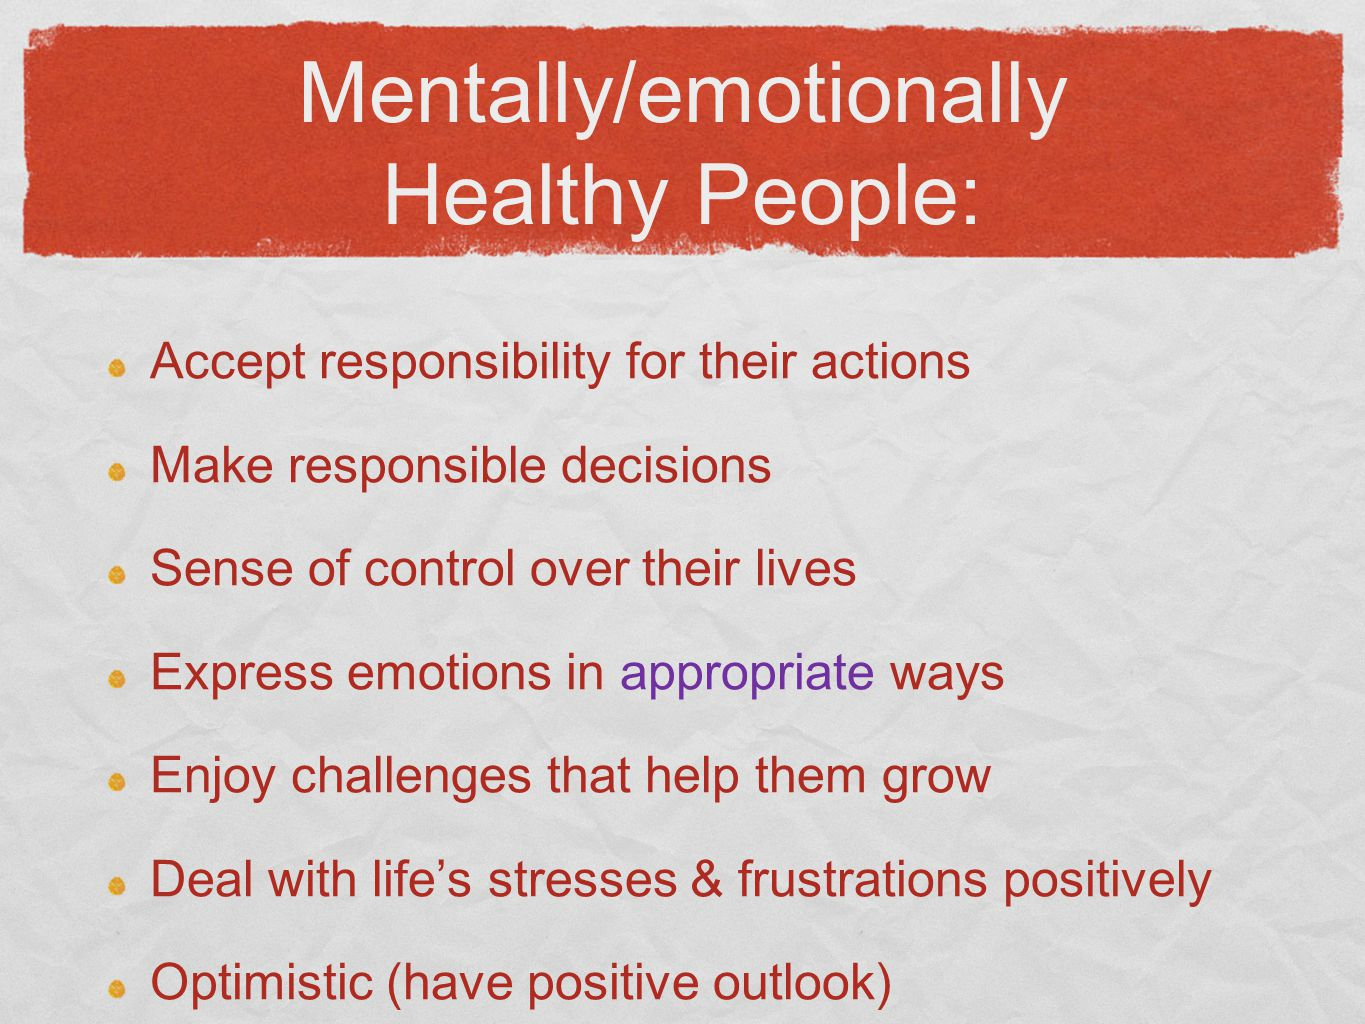 Mentally/emotionally Healthy People: Accept responsibility for their actions Make responsible decisions Sense of control over their lives Express emotions in appropriate ways Enjoy challenges that help them grow Deal with life's stresses & frustrations positively Optimistic (have positive outlook)